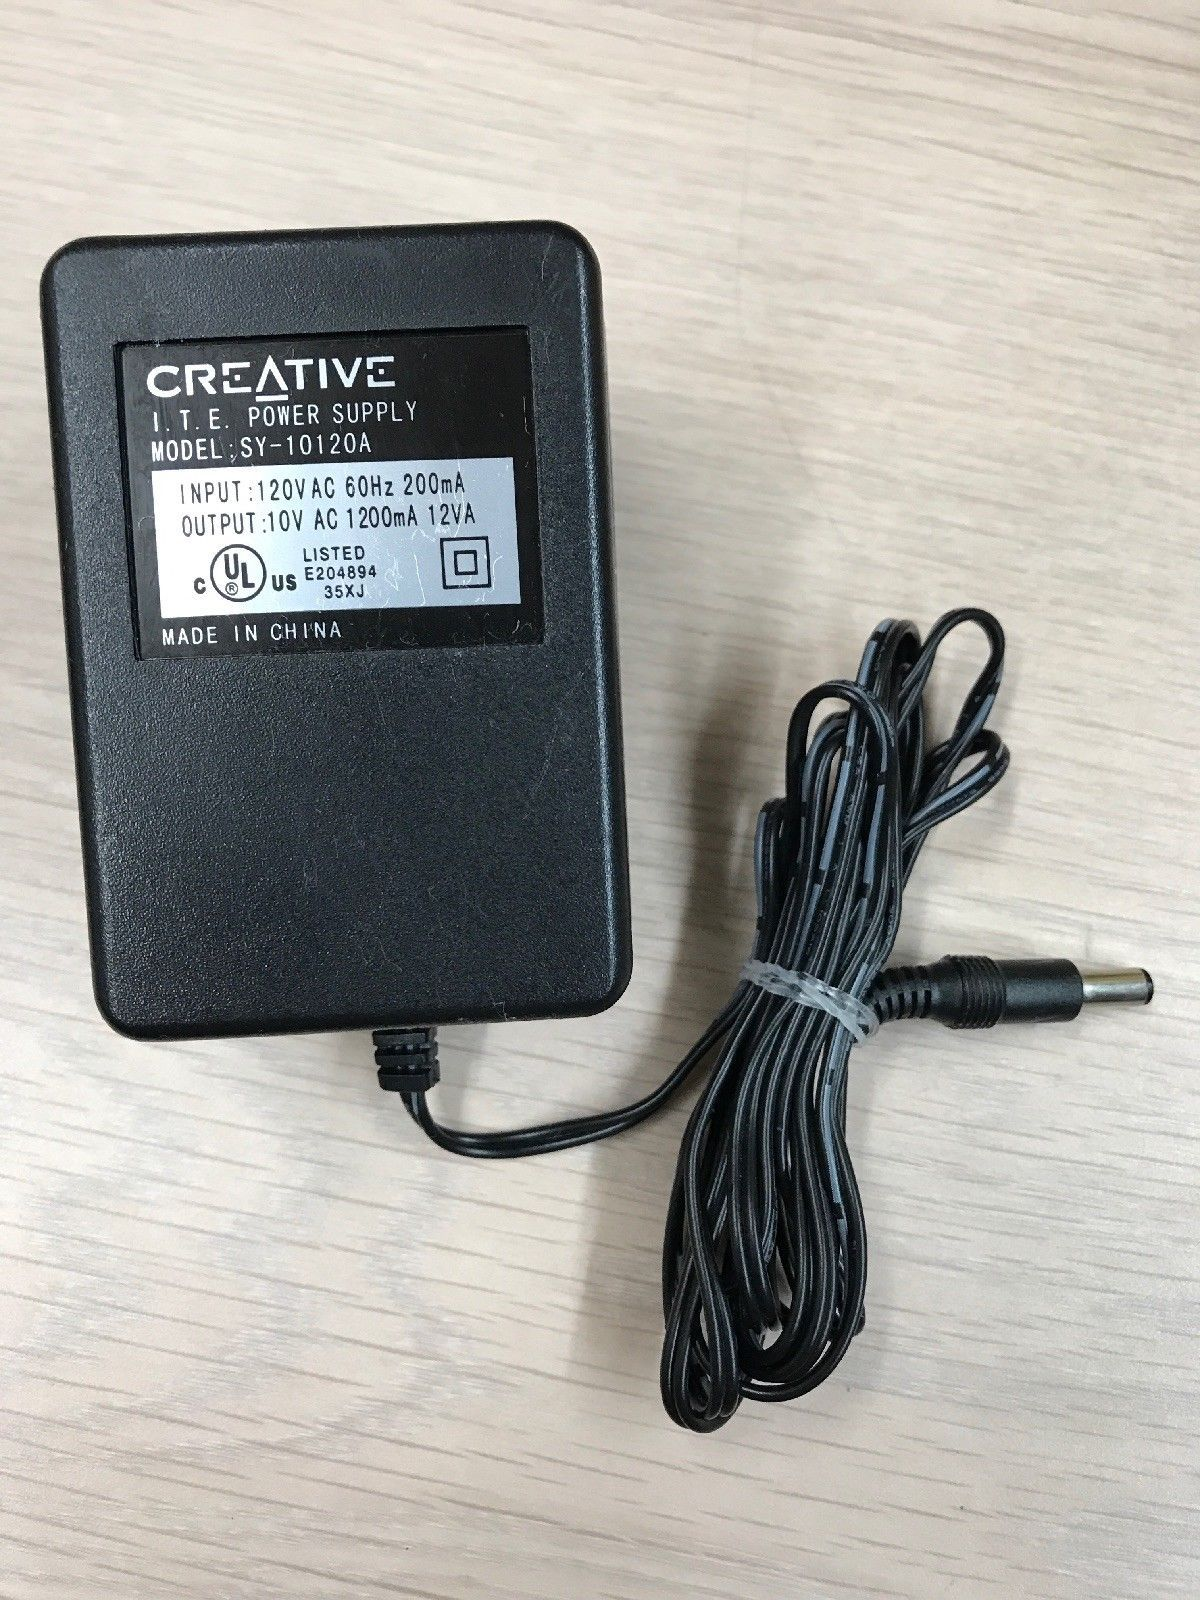 Brand New Creative 10vac 1200ma 12va Ac Ac Adapter For Sy 10120a Power Supply Charger Power Supply Charger Adapter